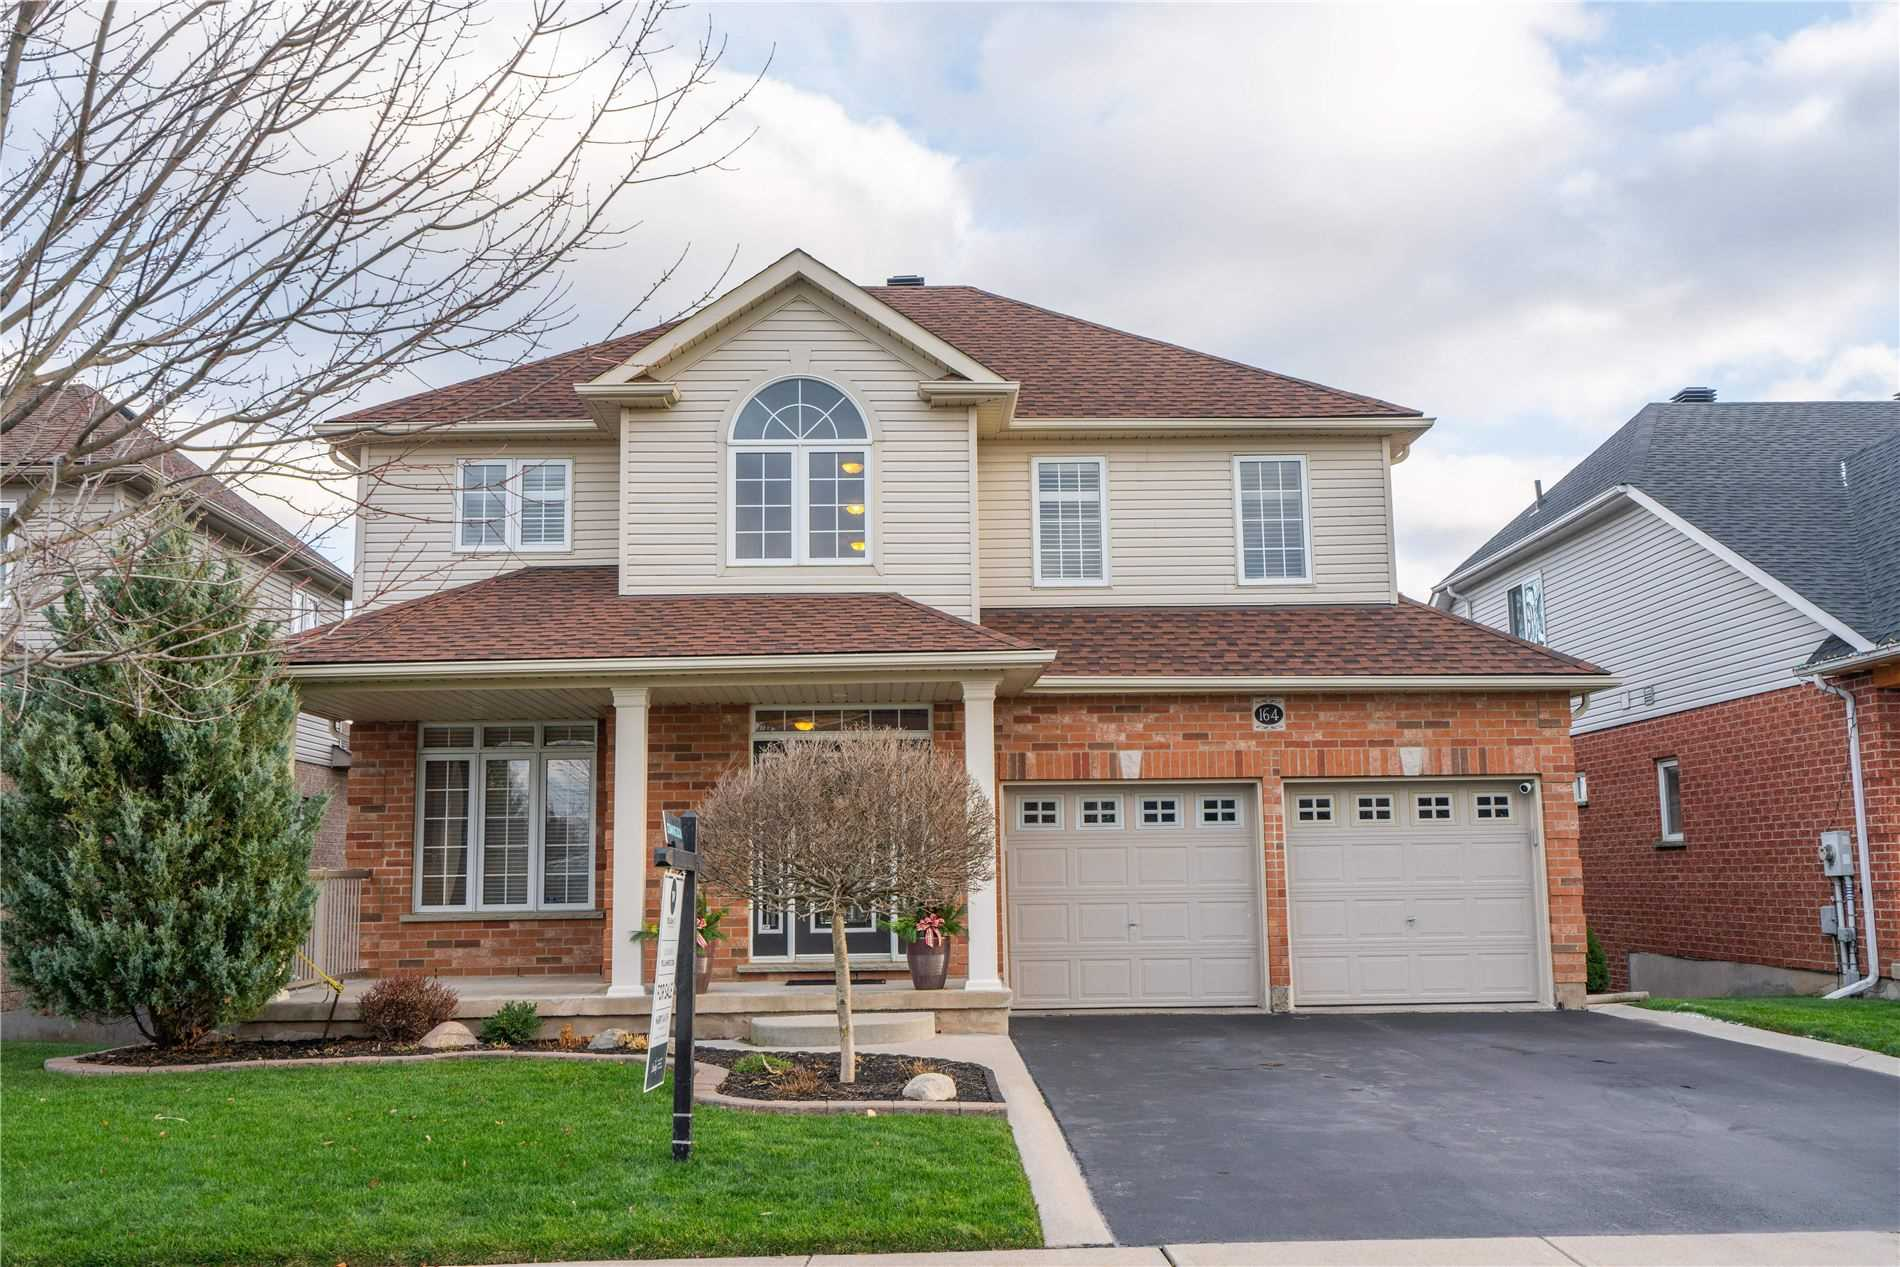 For Sale: 164 Parkinson Drive, Guelph Eramosa, ON | 4 Bed, 4 Bath House for $989900.00. See 29 photos!